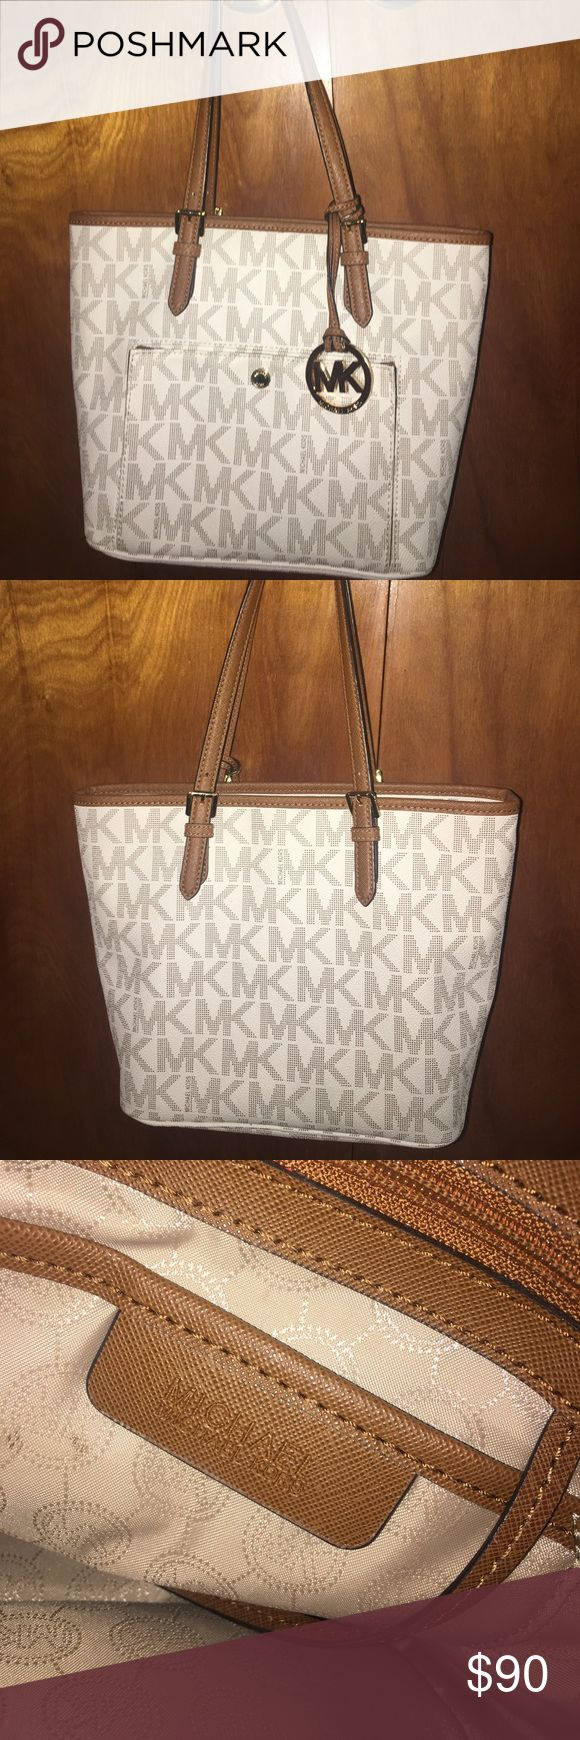 Michael Kors Logo Purse Gently used leather Michael Kors Purse in great condition Michael Kors Bags Totes